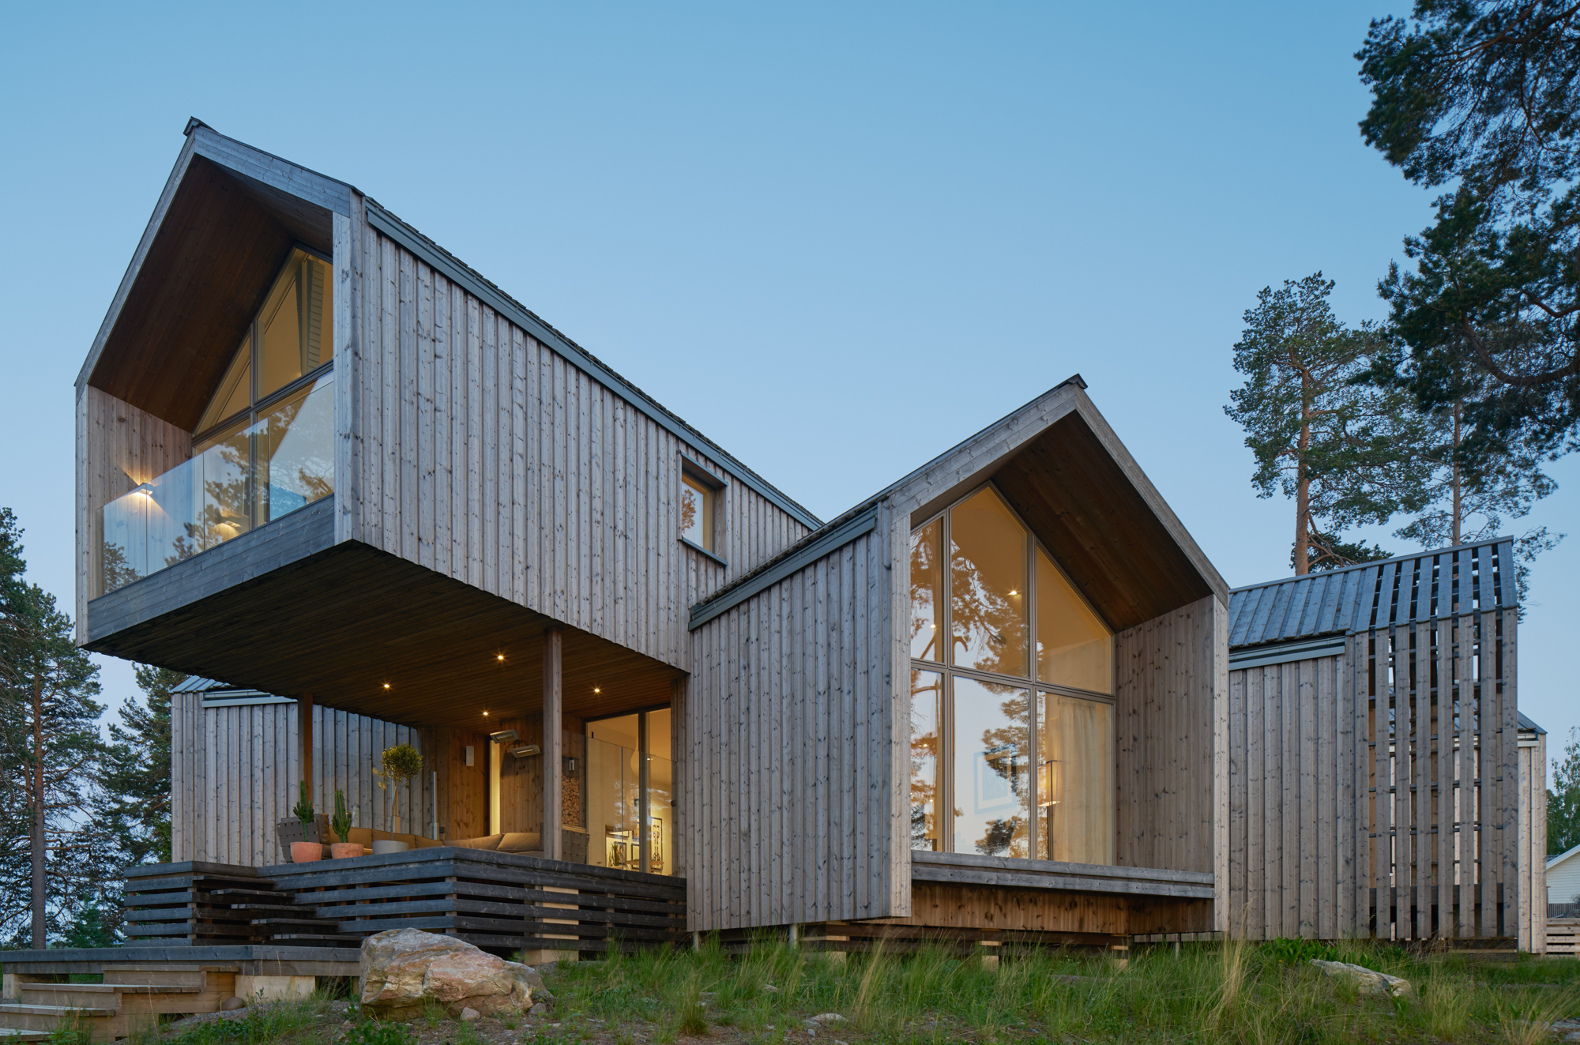 swedish juniper house mirrors its surroundings with a clever vinyl